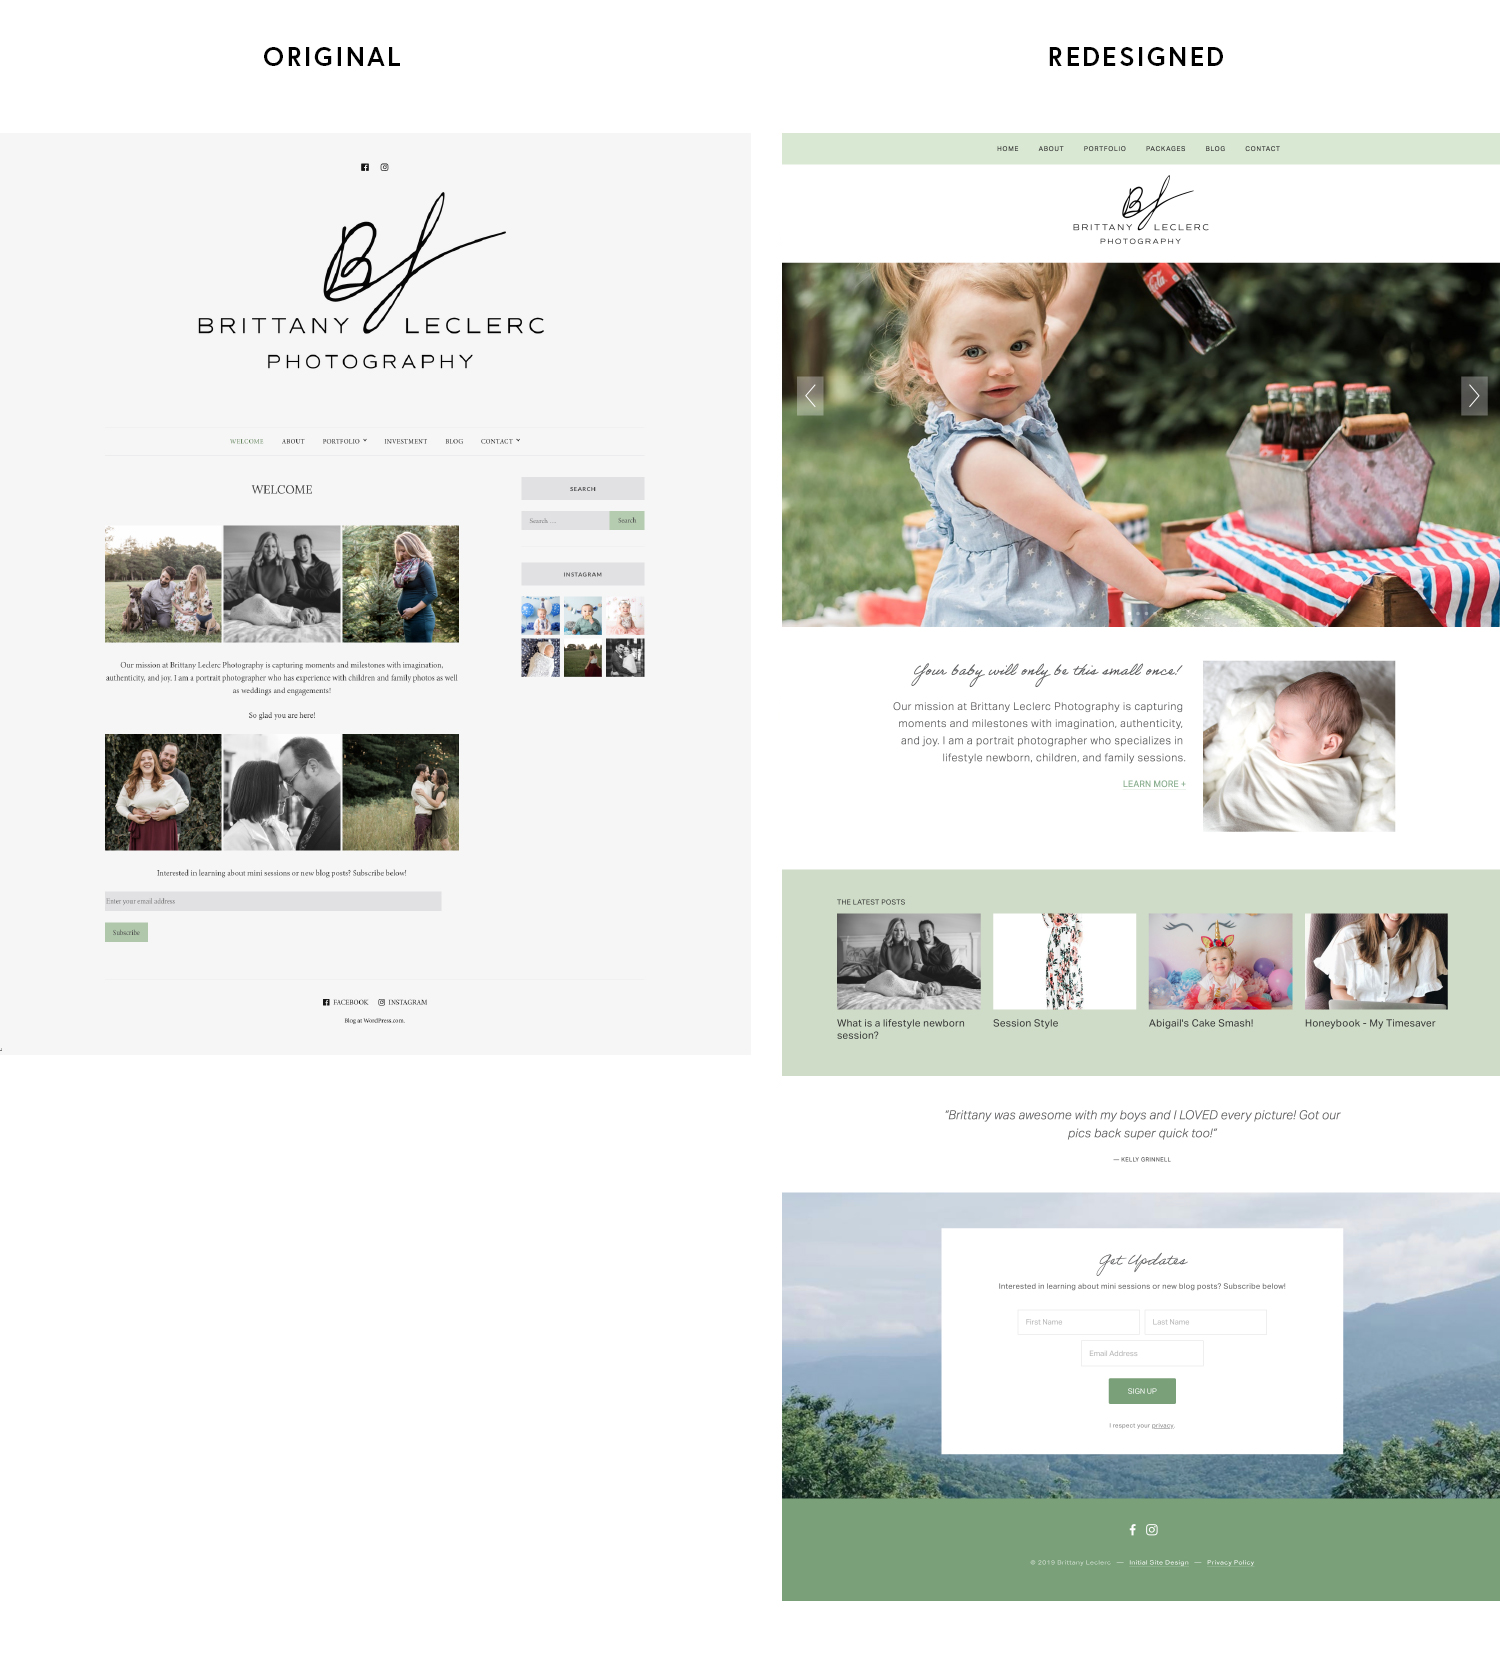 Photographer website migrated from Wordpress to Squarespace